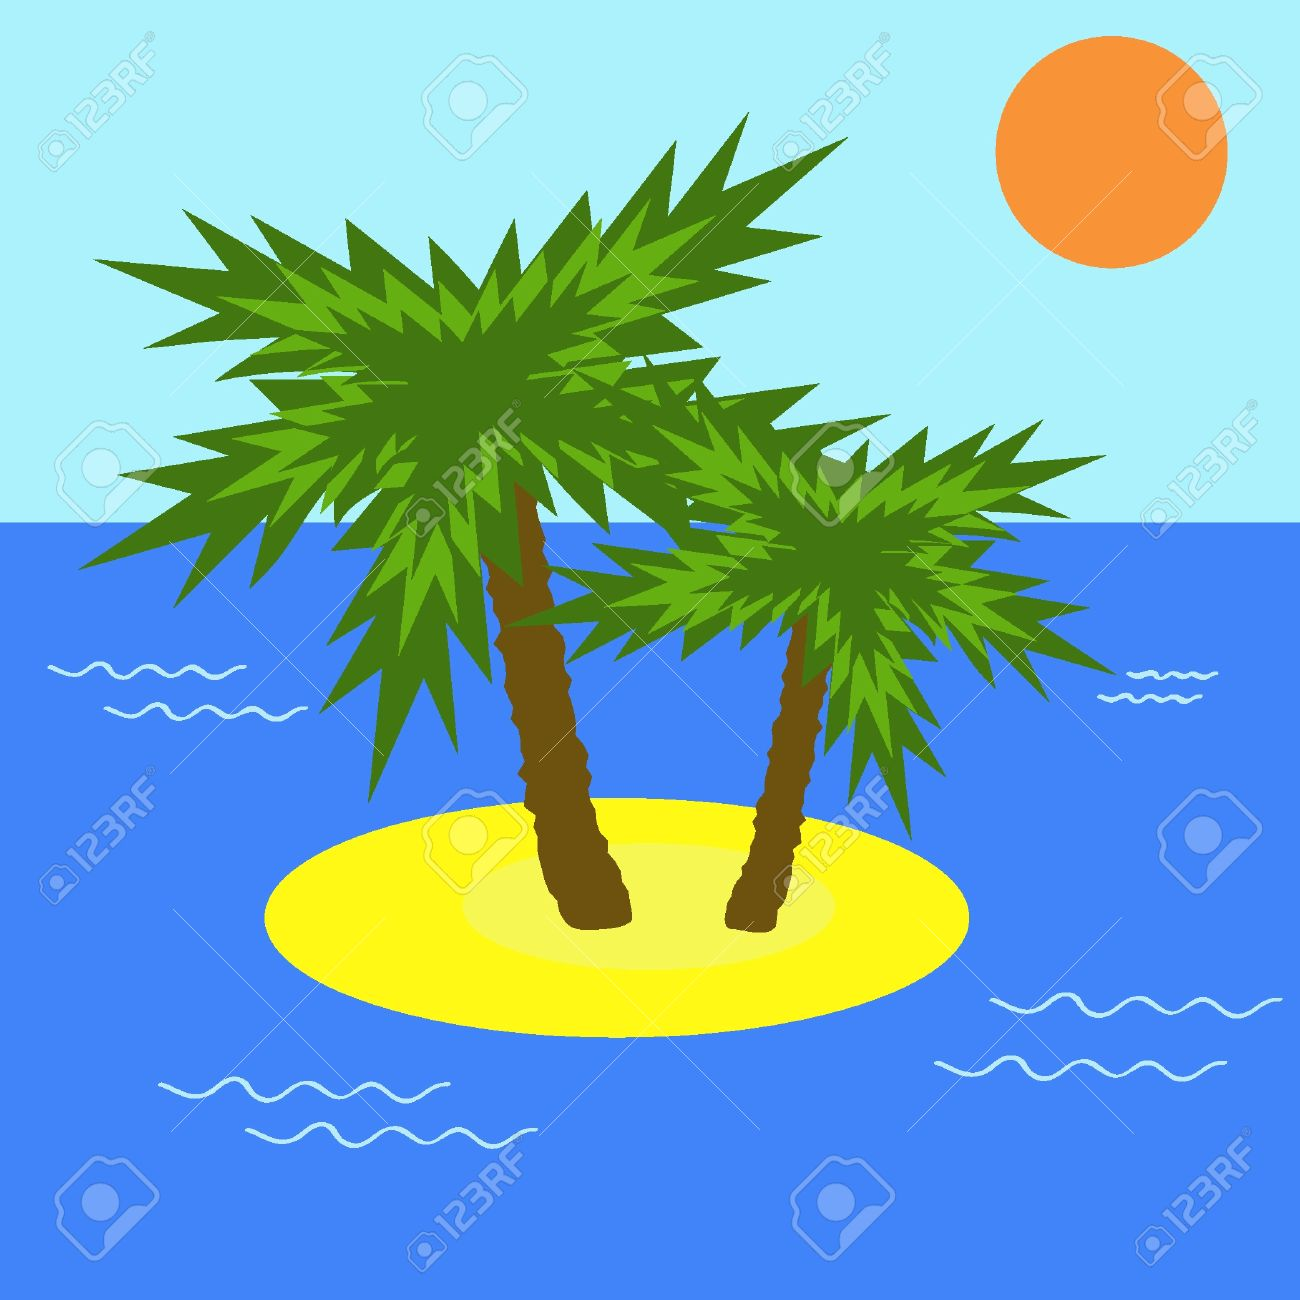 Desert Island With Two Palms. Vector Illustration. EPS8 Royalty.